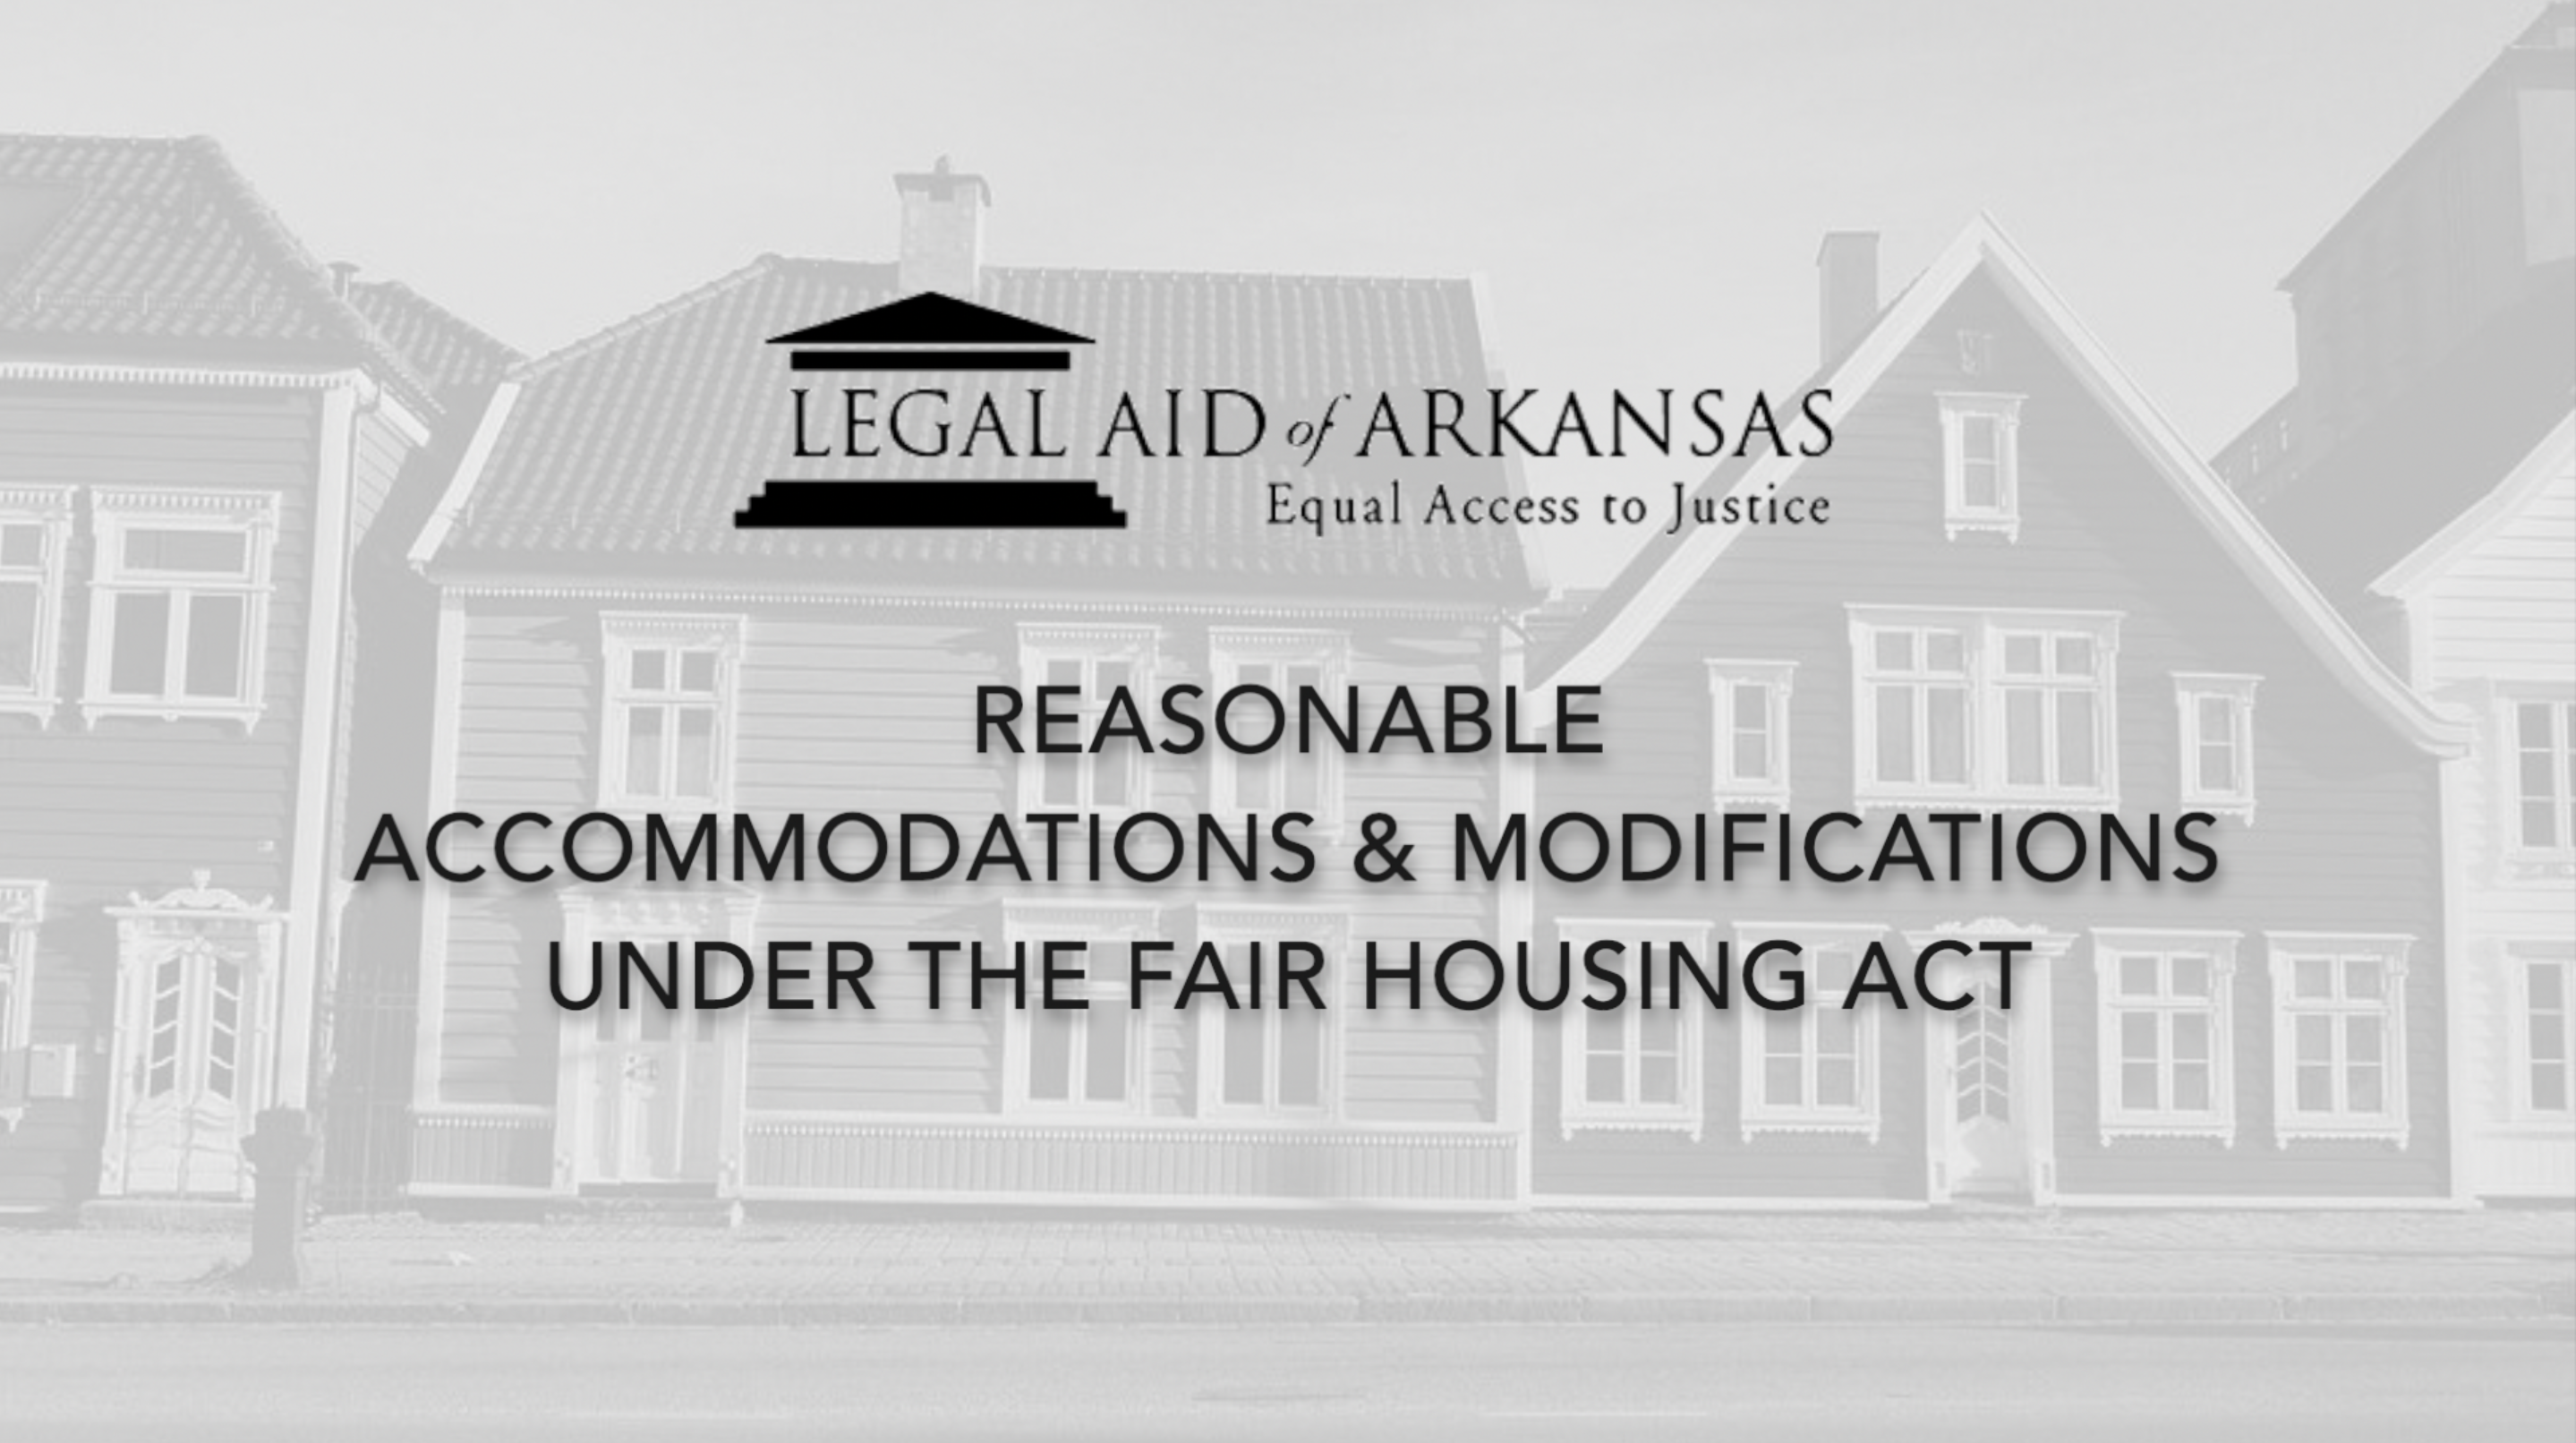 VIDEO - Reasonable Accommodations and Modifications Under the Fair Housing Act